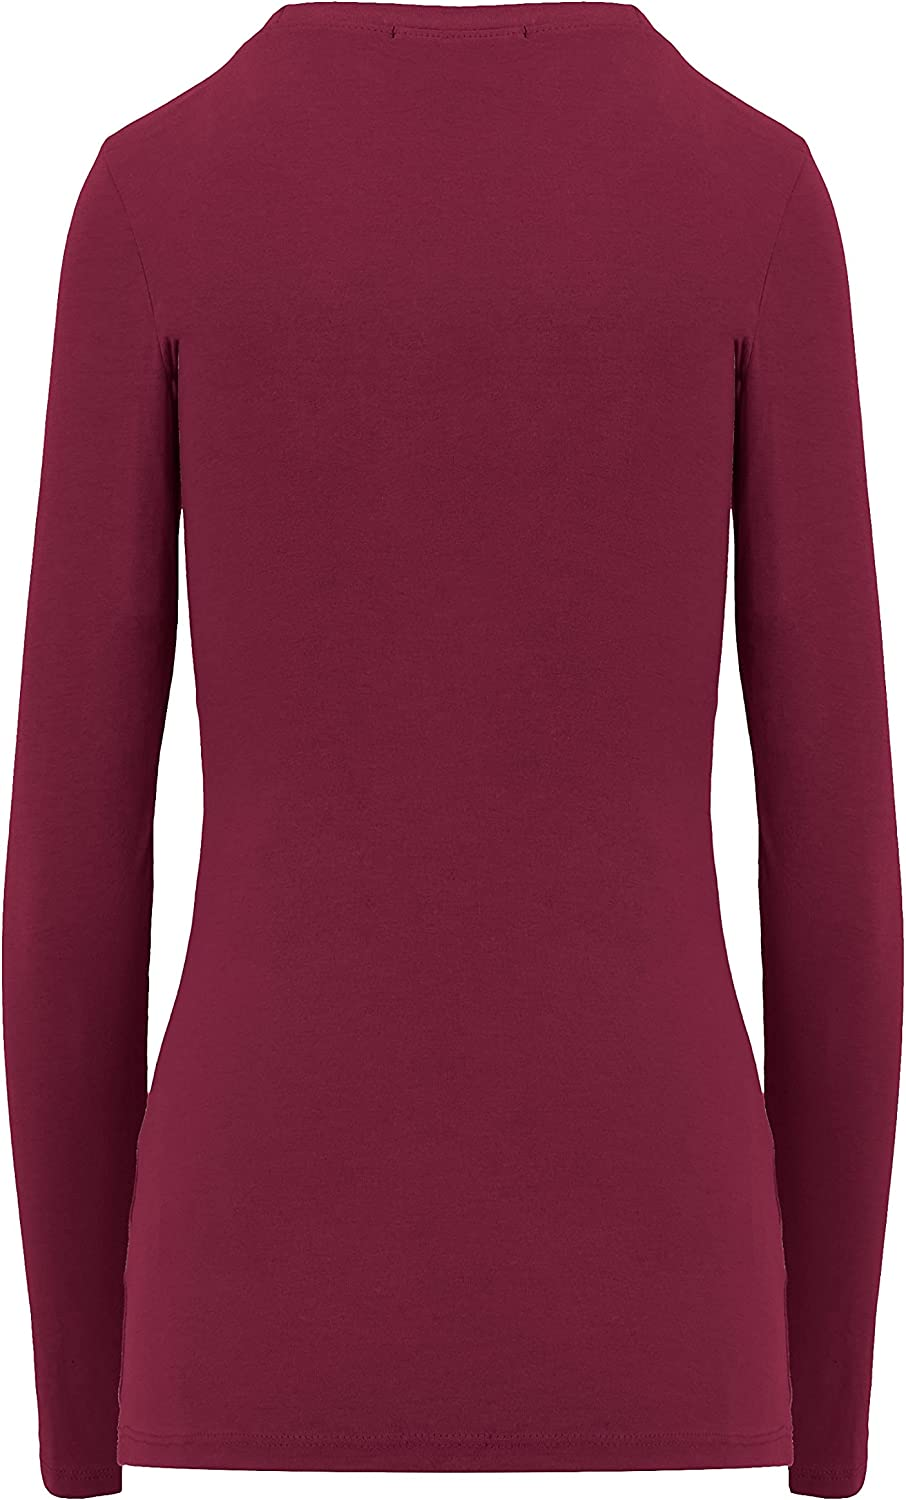 ClothingAve. Women's Comfy Long Sleeve Round Neck Undershirt Fitted Top | Layering, Work, All Season | Value-Pack Available